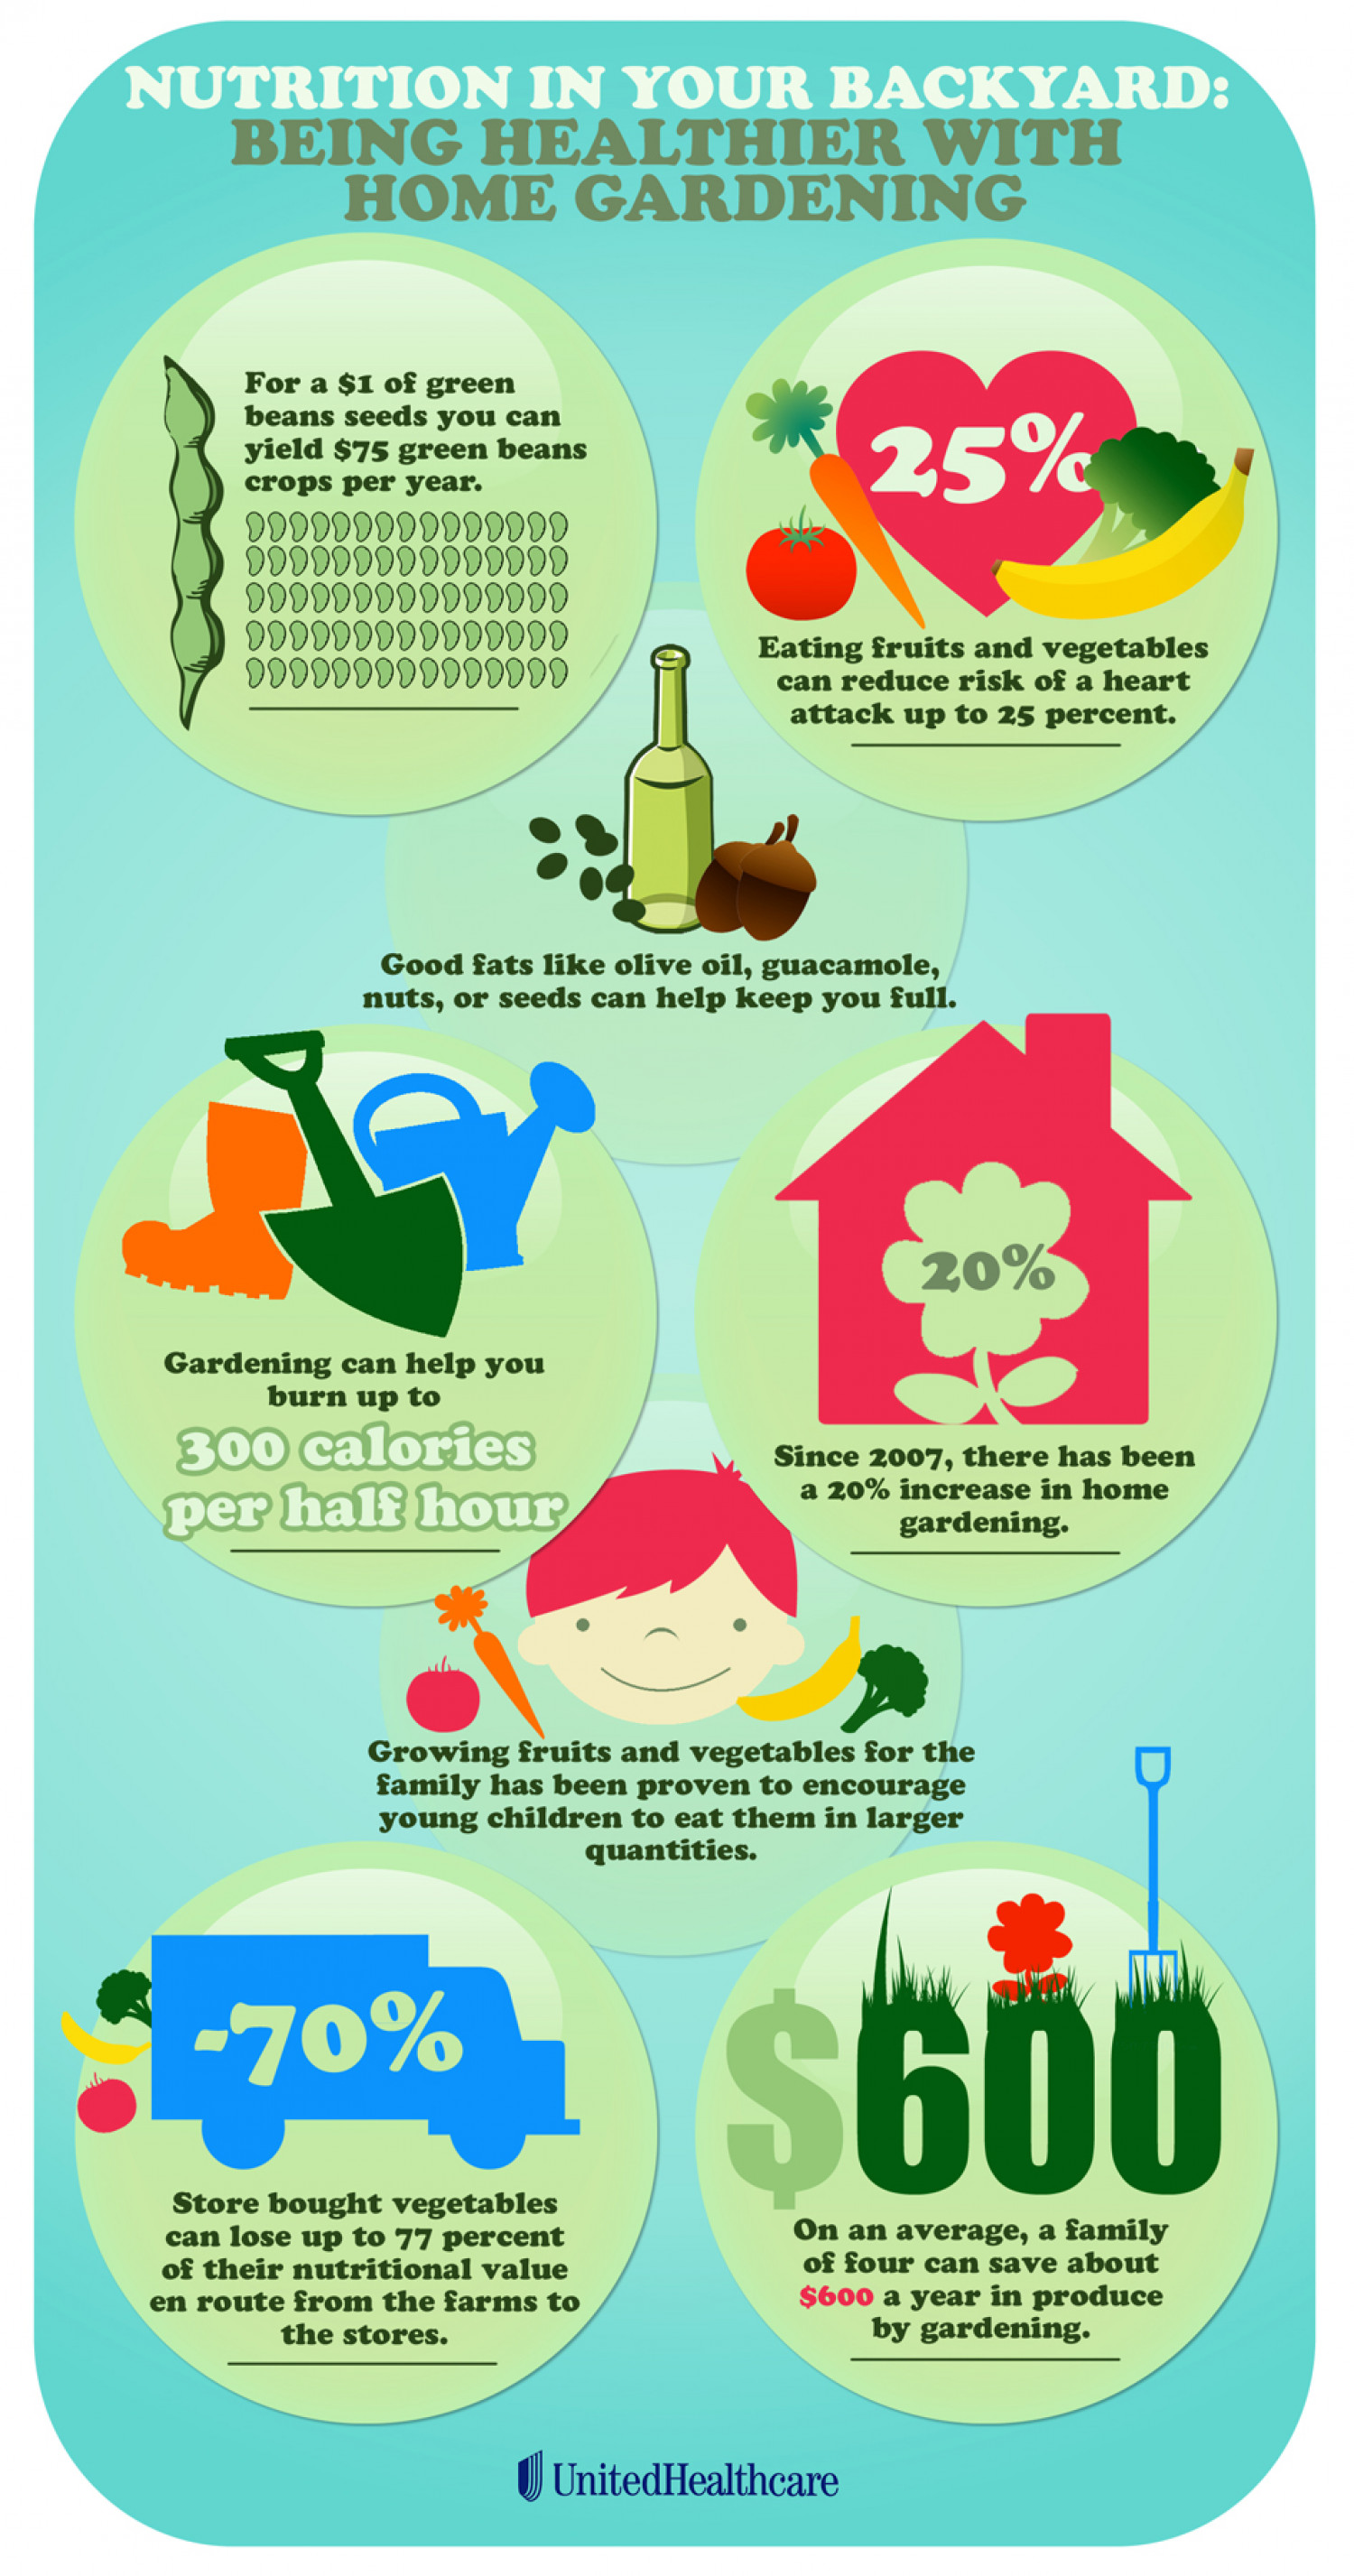 Nutrition in Your Backyard: Being Healthier with Home Gardening Infographic